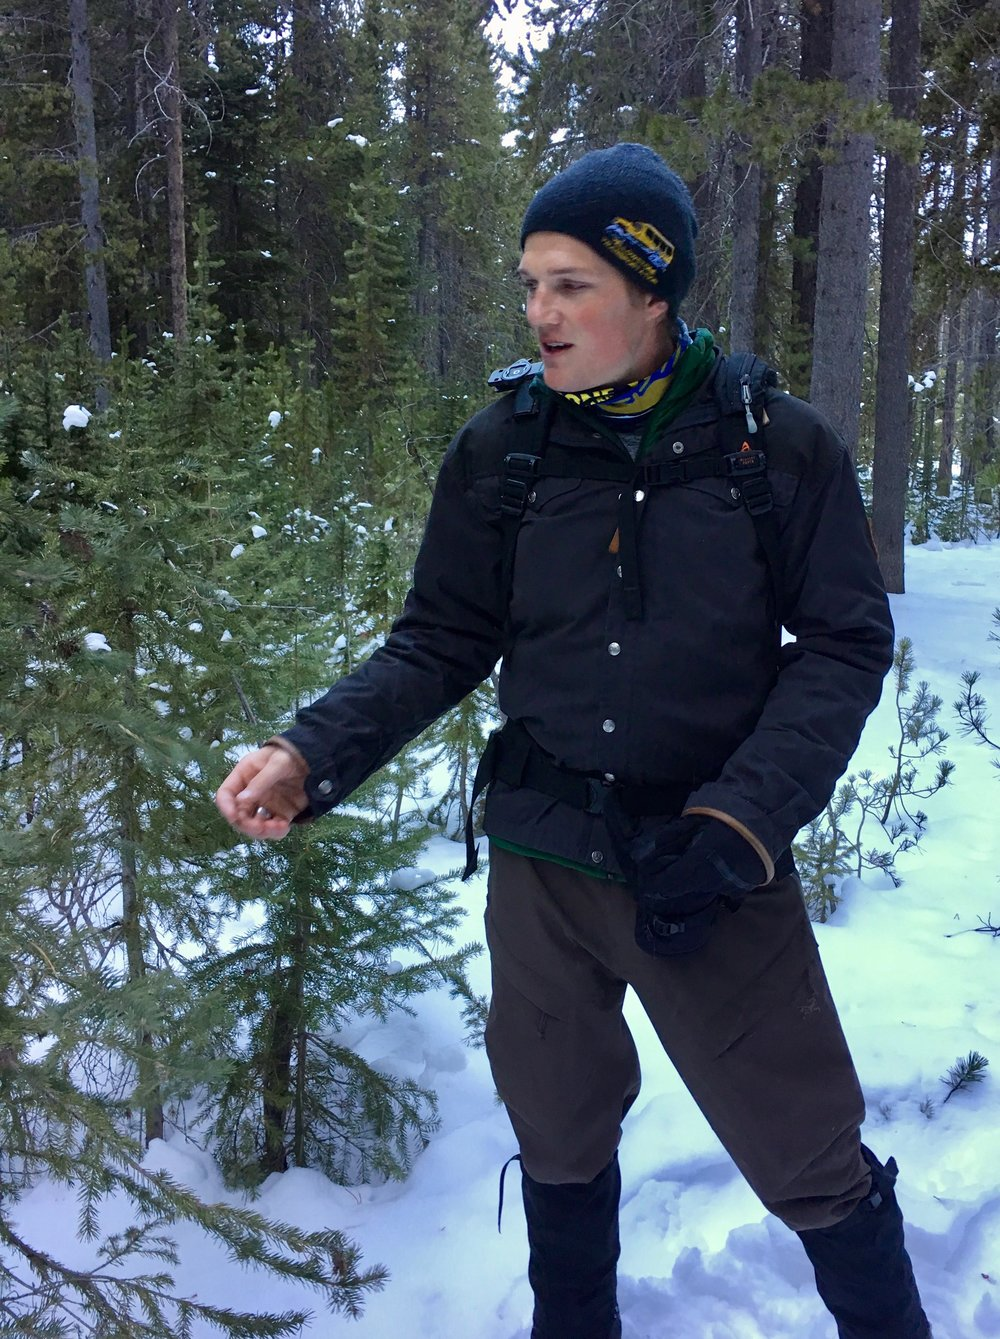 Gregor, our Snowshoe Guide